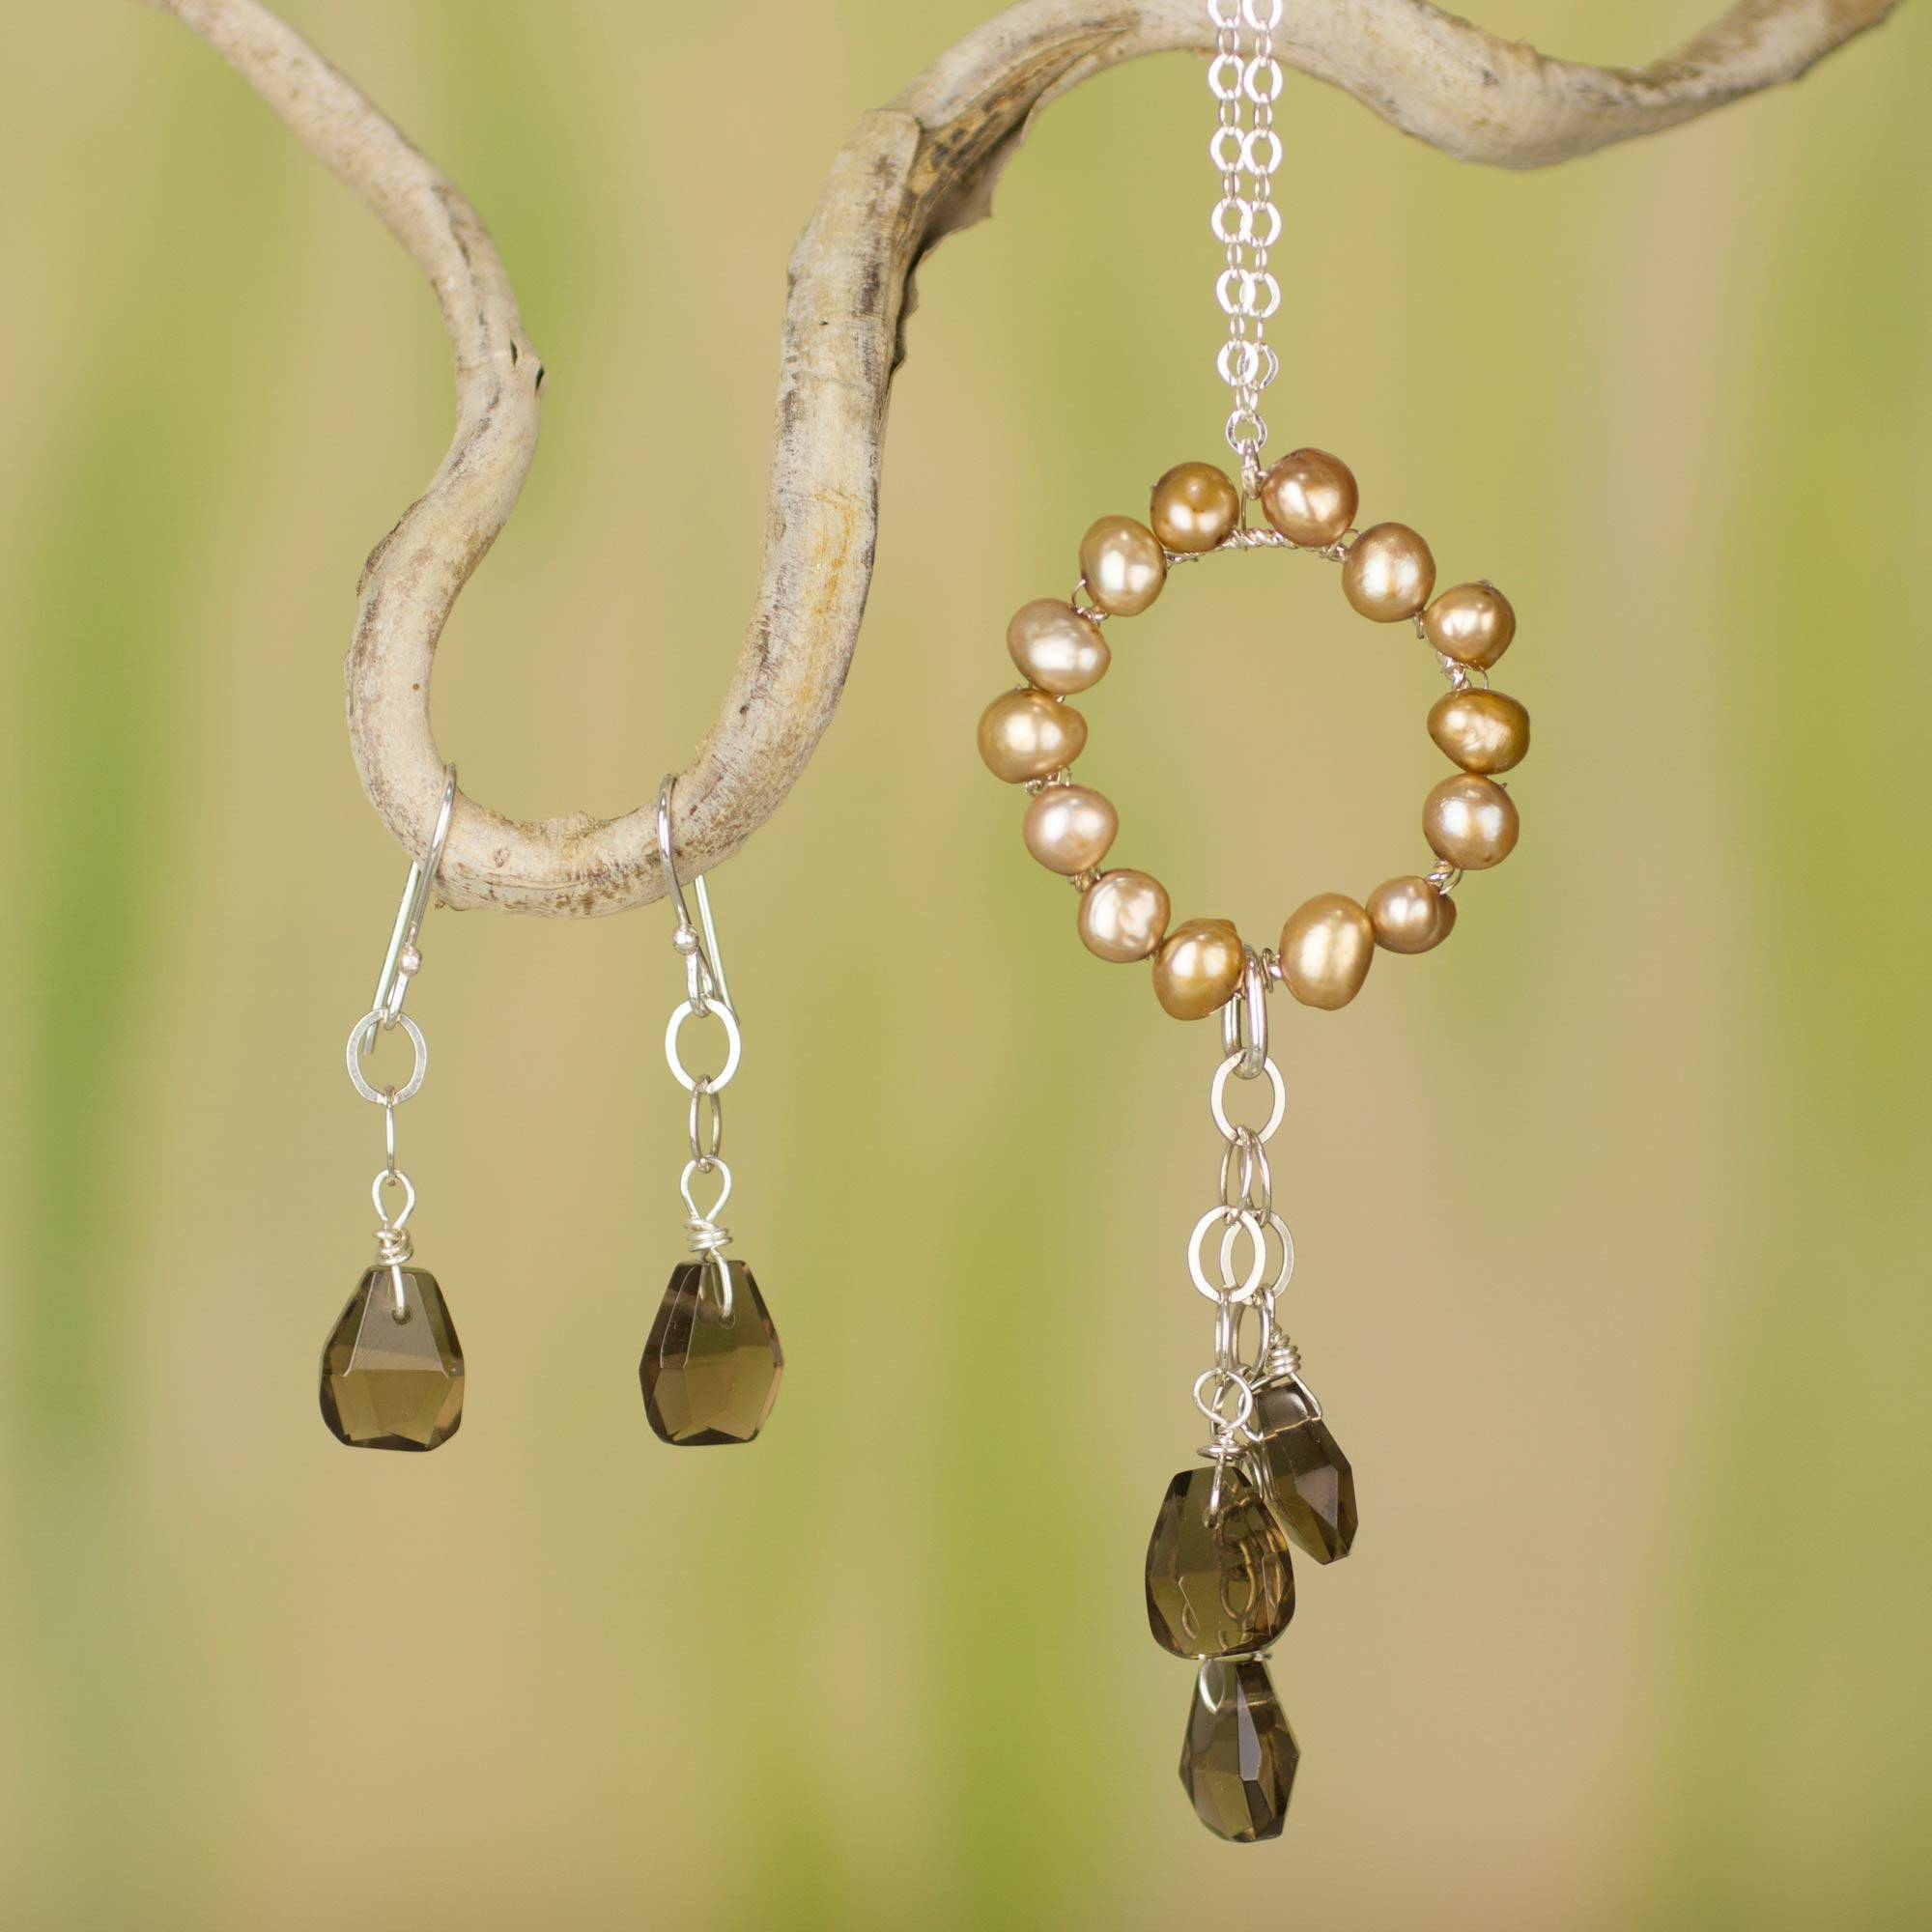 Unicef Uk Market Jewelry Set Pearl And Smoky Quartz Pendant On Silver Chain Clouds At Daybreak